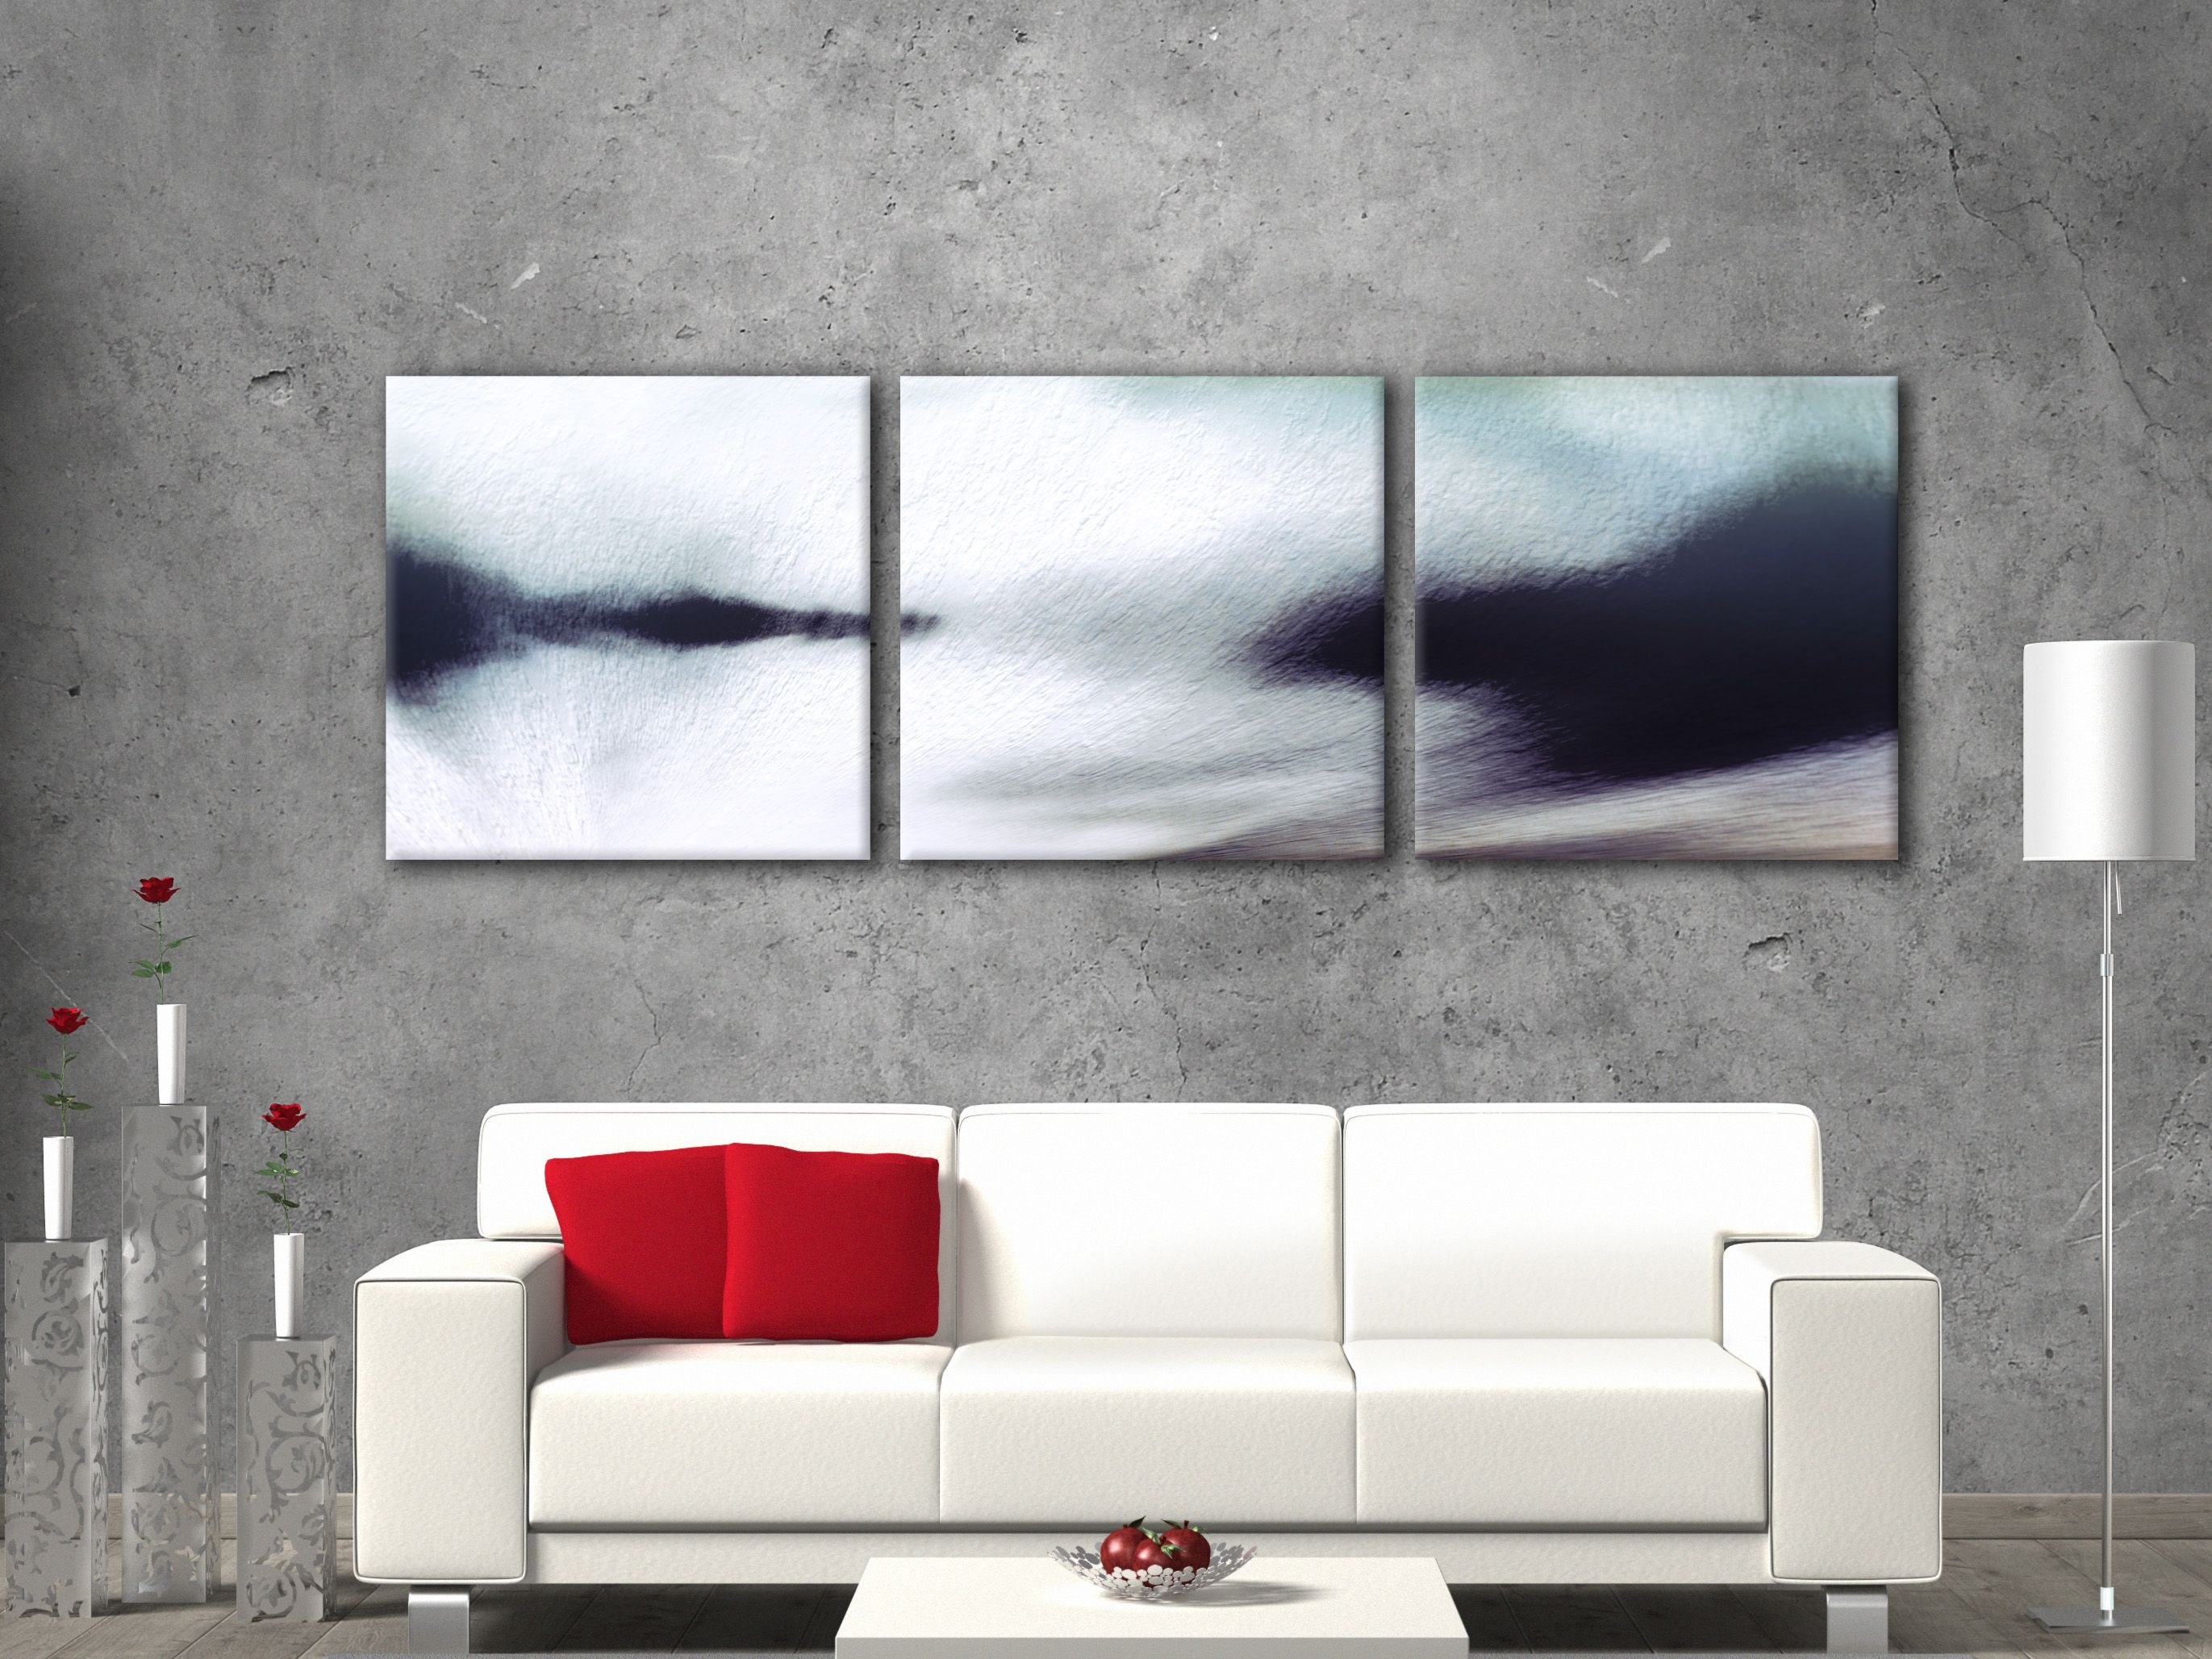 dining room printable art. Dining Room Printable Art. Printables Modern Gray Abstract Painting Large Download Set Of 3 Black And White Minimalist Wall Decor Art